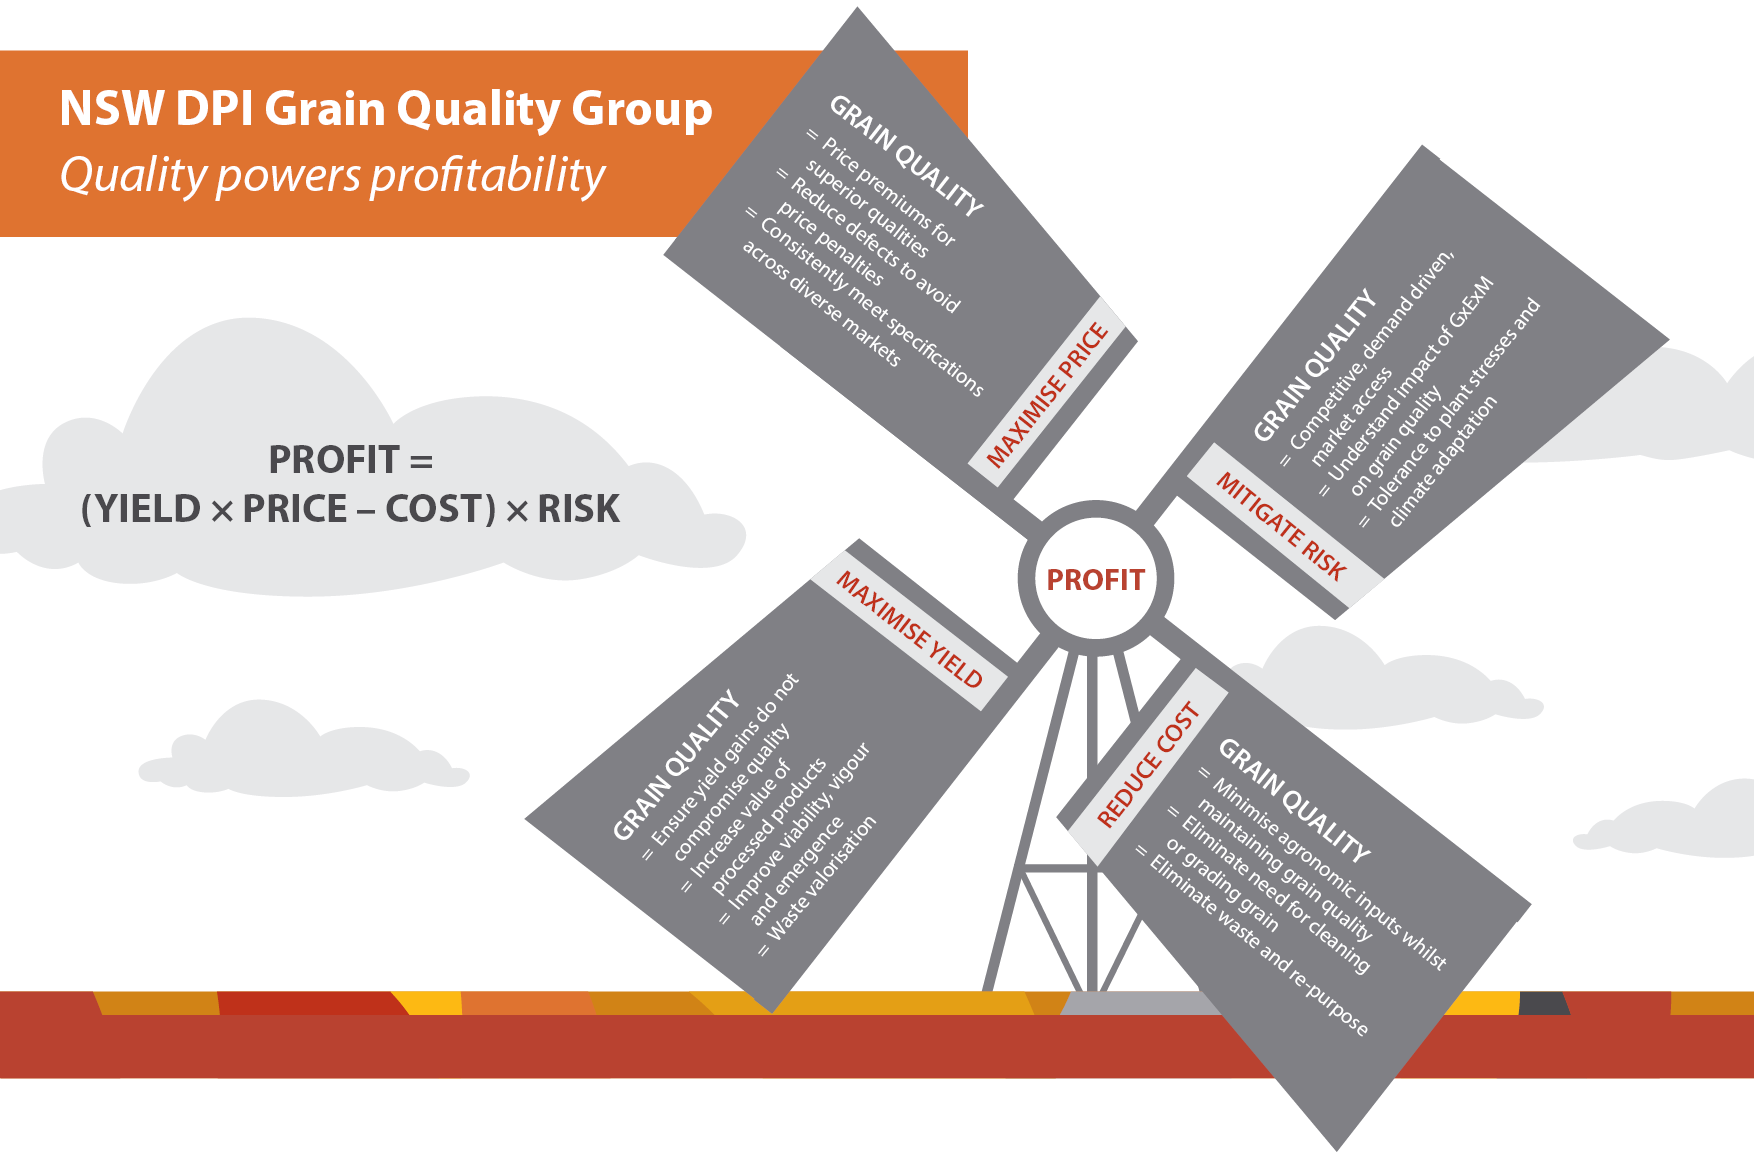 NSW DPI grain quality research powers grower profitability, as: Profit = (Yield x Price - Cost) x Risk. Grain quality maximises price (price premiums for superior qualities; reduce defects to avoid price penalties; consistently meet specifications across diverse markets). Grain quality maximises yield (ensure yield gains do not compromise quality; increase value of processed products; improve viability, vigour and emergence; waste valorisation). Grain quality reduces cost (minimise agronomic inputs whilst maintaining grain quality; eliminate need for cleaning or grading grain; eliminate waste and re-purpose). Grain quality mitigates risk (competitive, demand driven market access; understand impact of GxExM on grain quality; tolerance to plant stresses and climate adaptation). The quality of grains (including wheat, pulses, rice, durum, oilseeds and feed grains) is a major driver of grower profits.